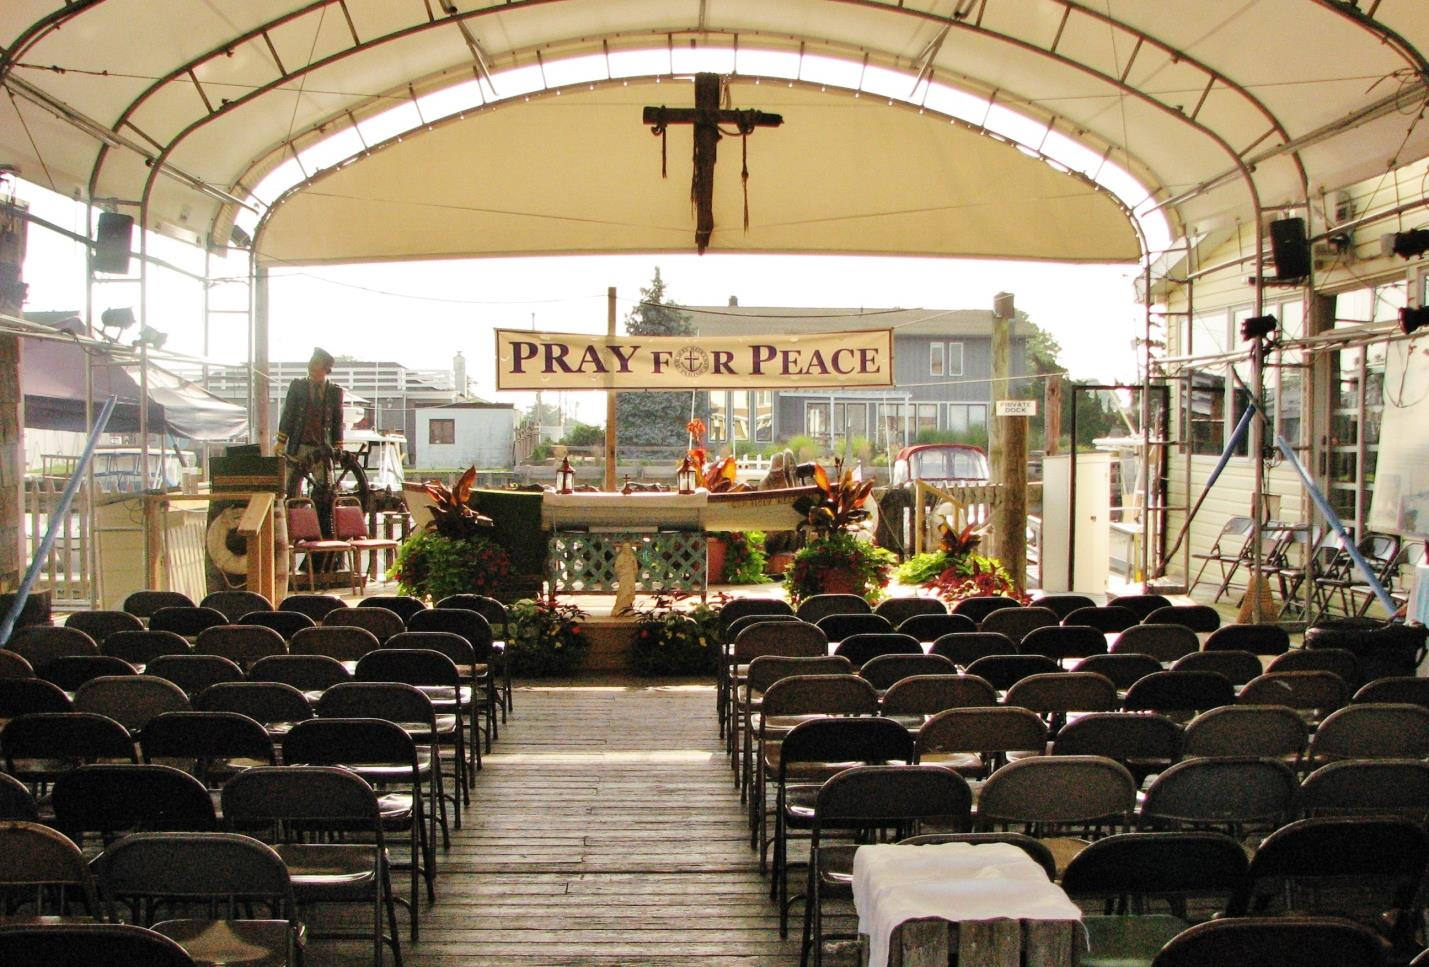 OUR HOLY REDEEMER ROMAN CATHOLIC CHURCH FREEPORT, NEW YORK 1911-2011 THERE IS A SEAT WAITING FOR YOU NEXT SUNDAY ON THE WATERFRONT!